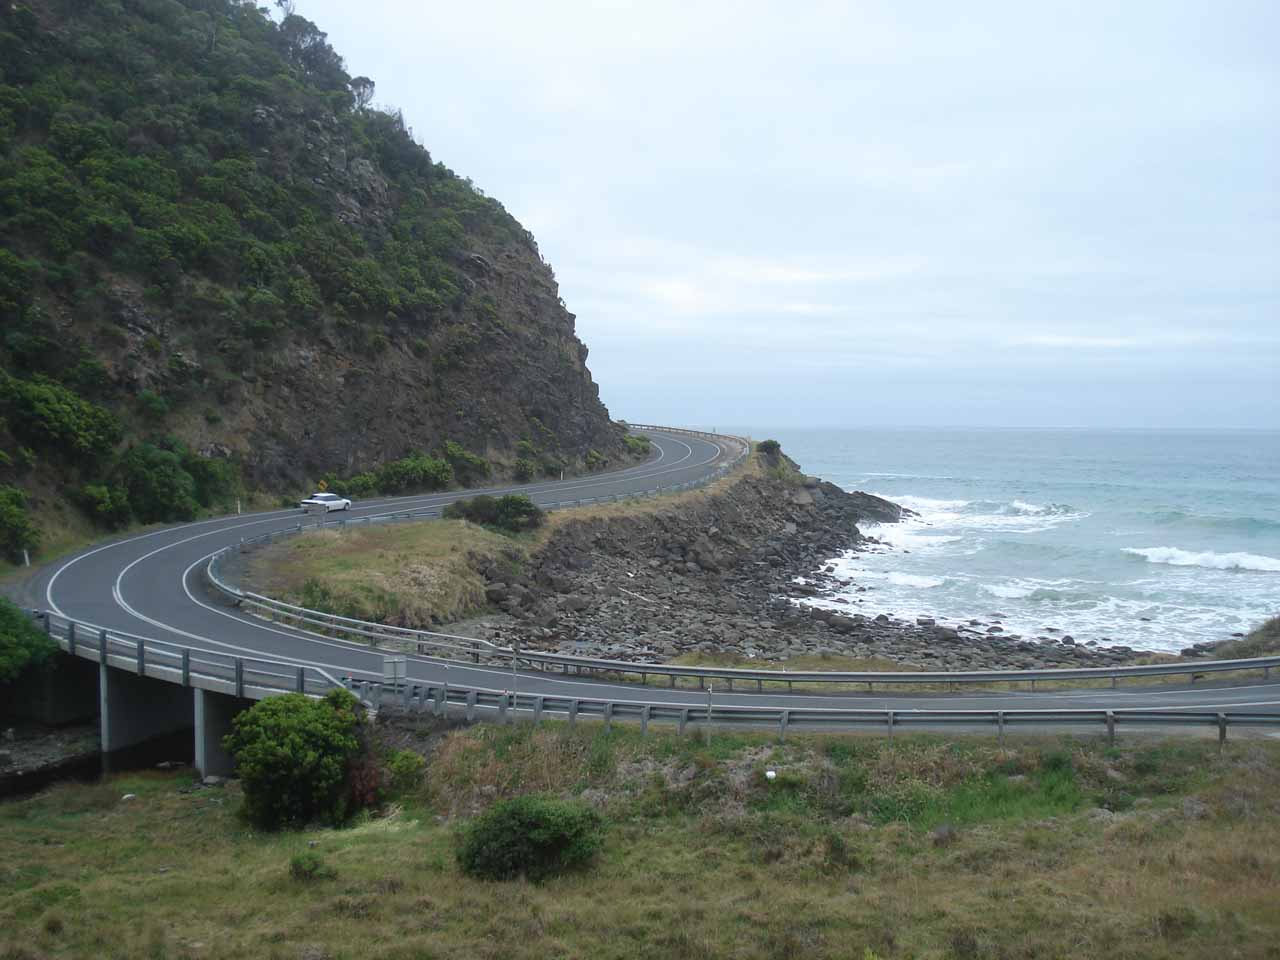 Looking back down at the Great Ocean Road